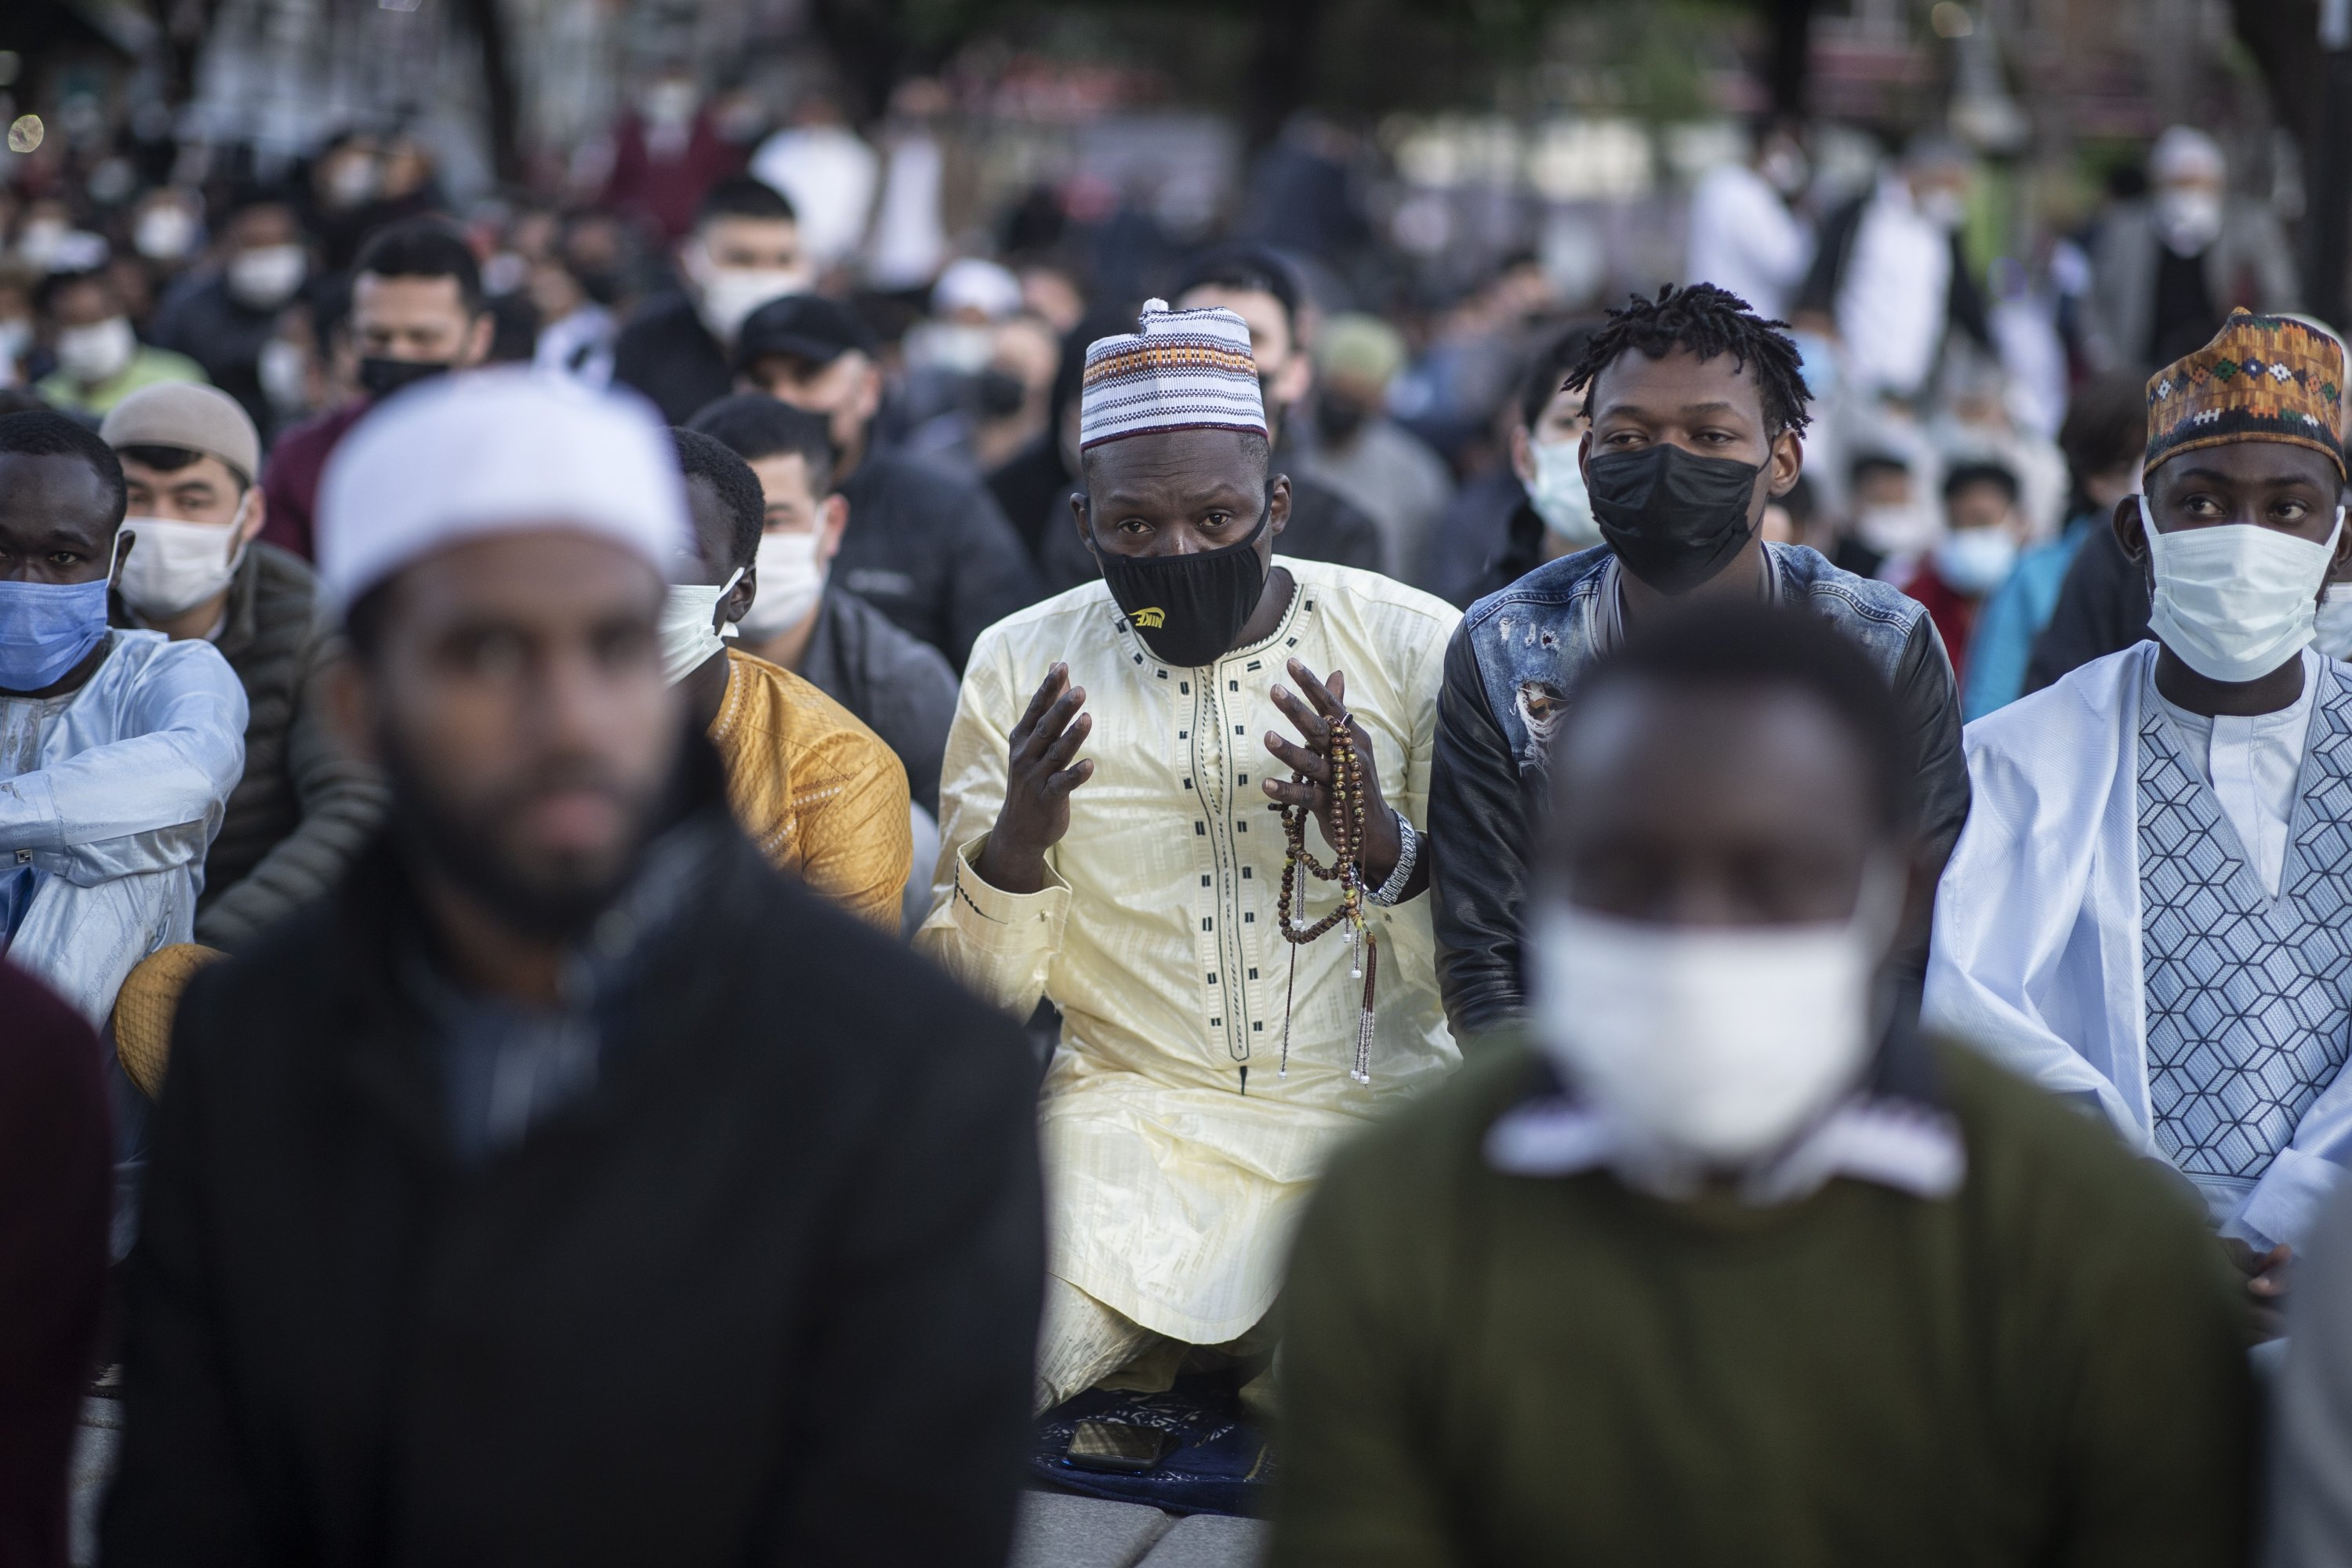 Muslims offer prayers during the first day of Eid al-Fitr, which marks the end of the holy month of Ramadan, outside the Hagia Sophia Grand Mosque in the historic Sultanahmet district of Istanbul, Turkey, May 13, 2021. (EPA Photo)